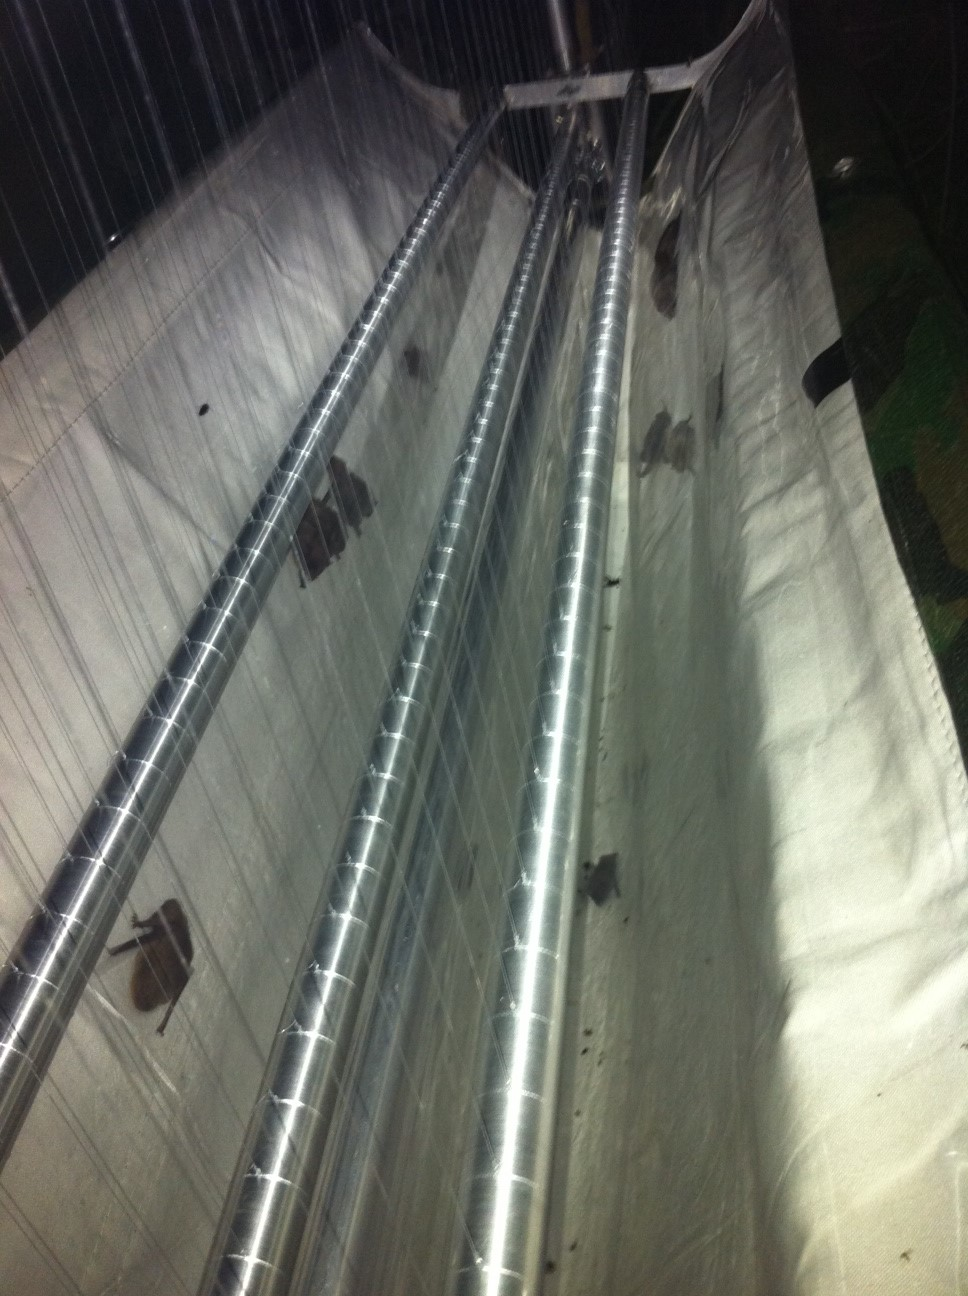 Bats caught in a harp trap under an advanced survey licence from Natural England